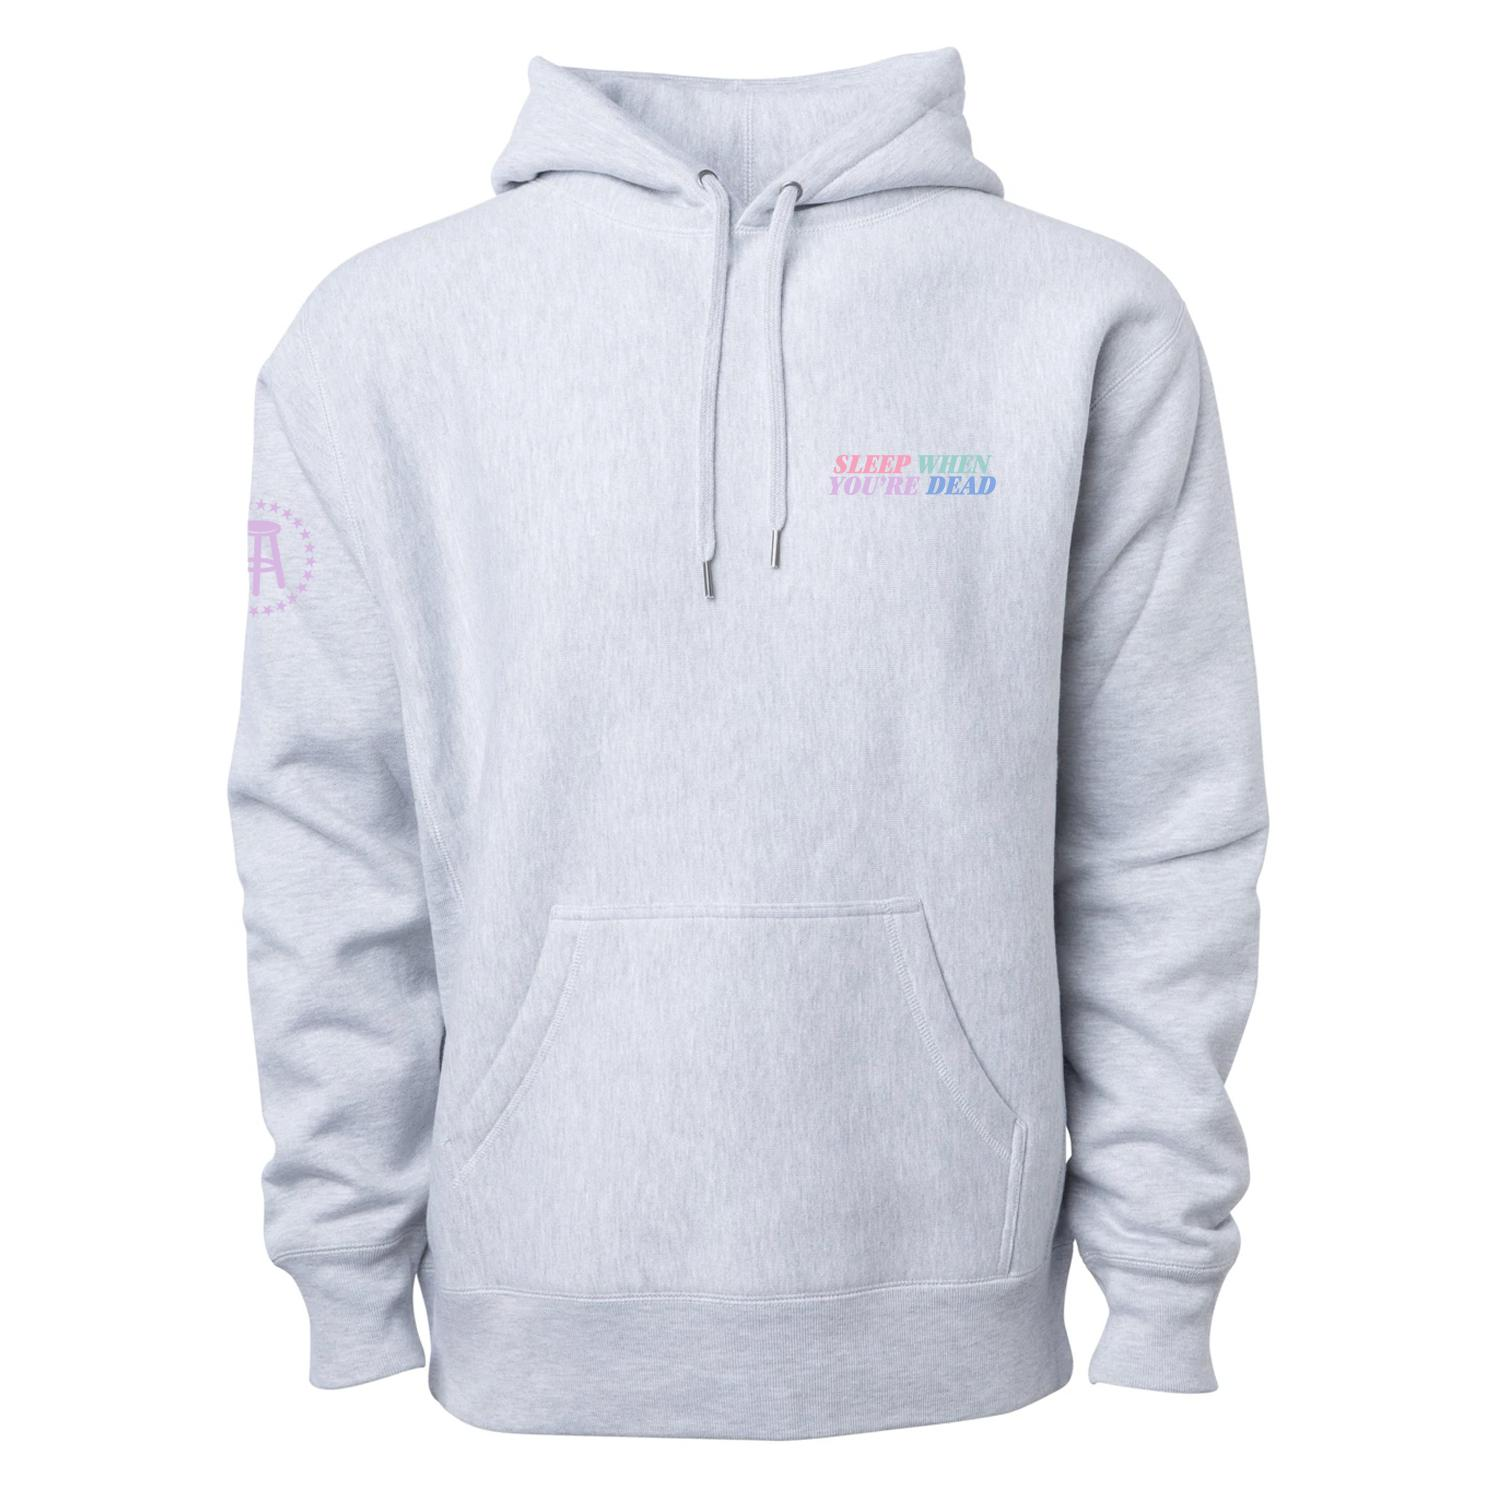 Sleep When You're Dead Hoodie